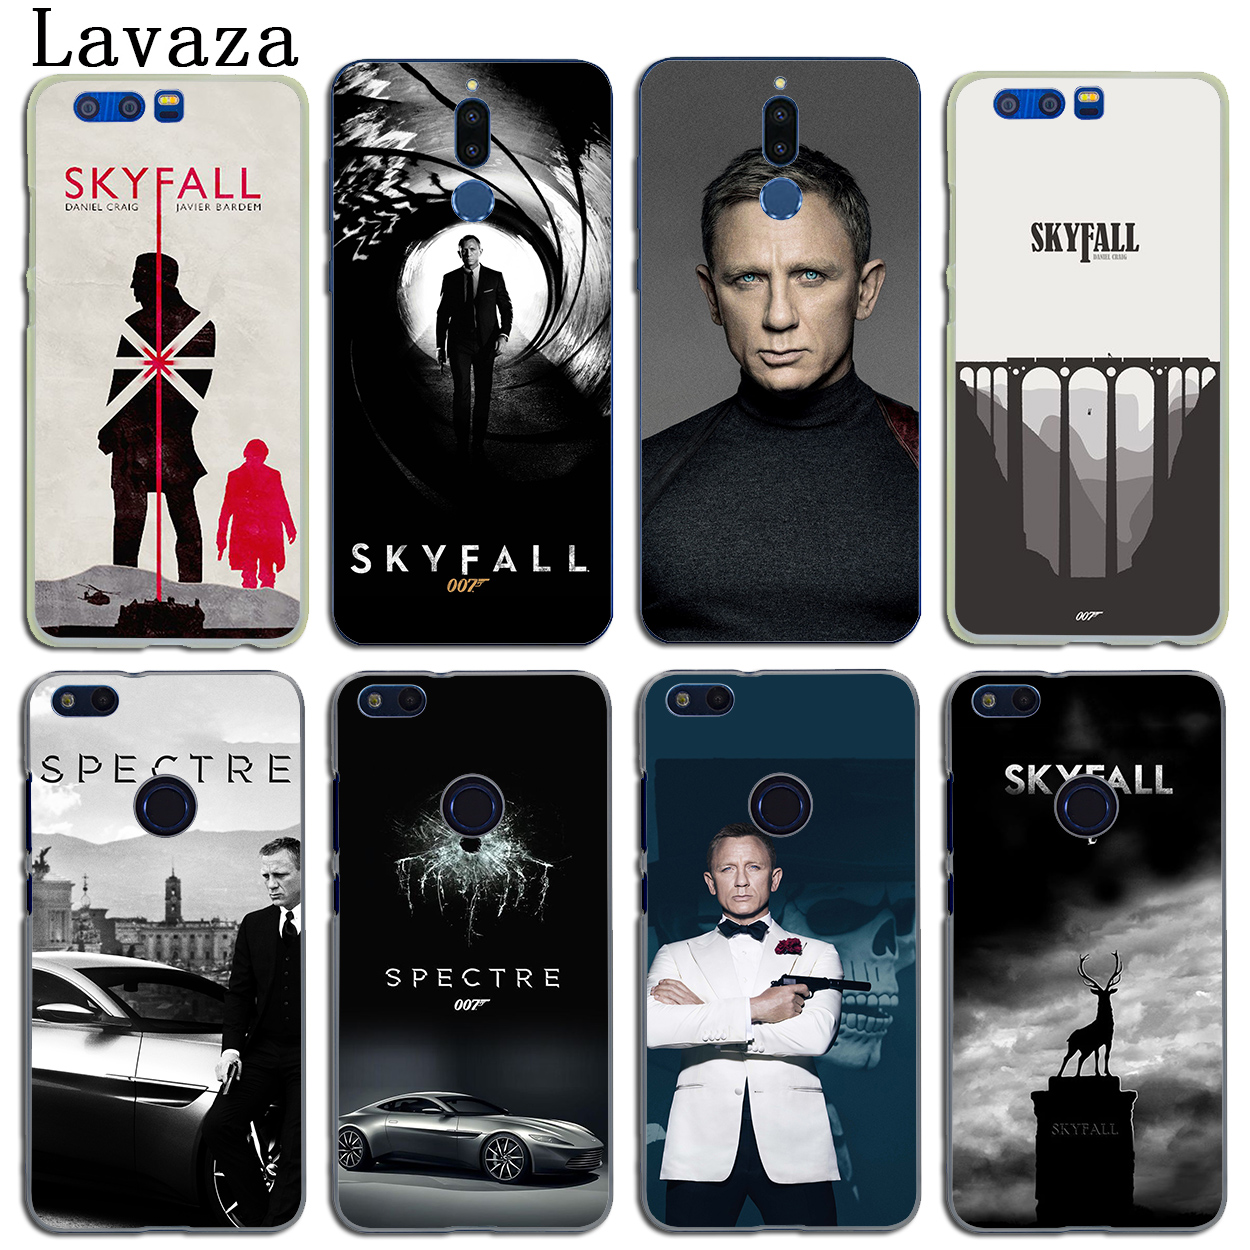 007 Spectre James Bond Skyfall Case for Huawei Y6 Prime Y5 II Y7 2017 2018 Nova 4 3i 3 Honor play 10 8X 8 9 Lite 7C 7X 6C 7A Pro